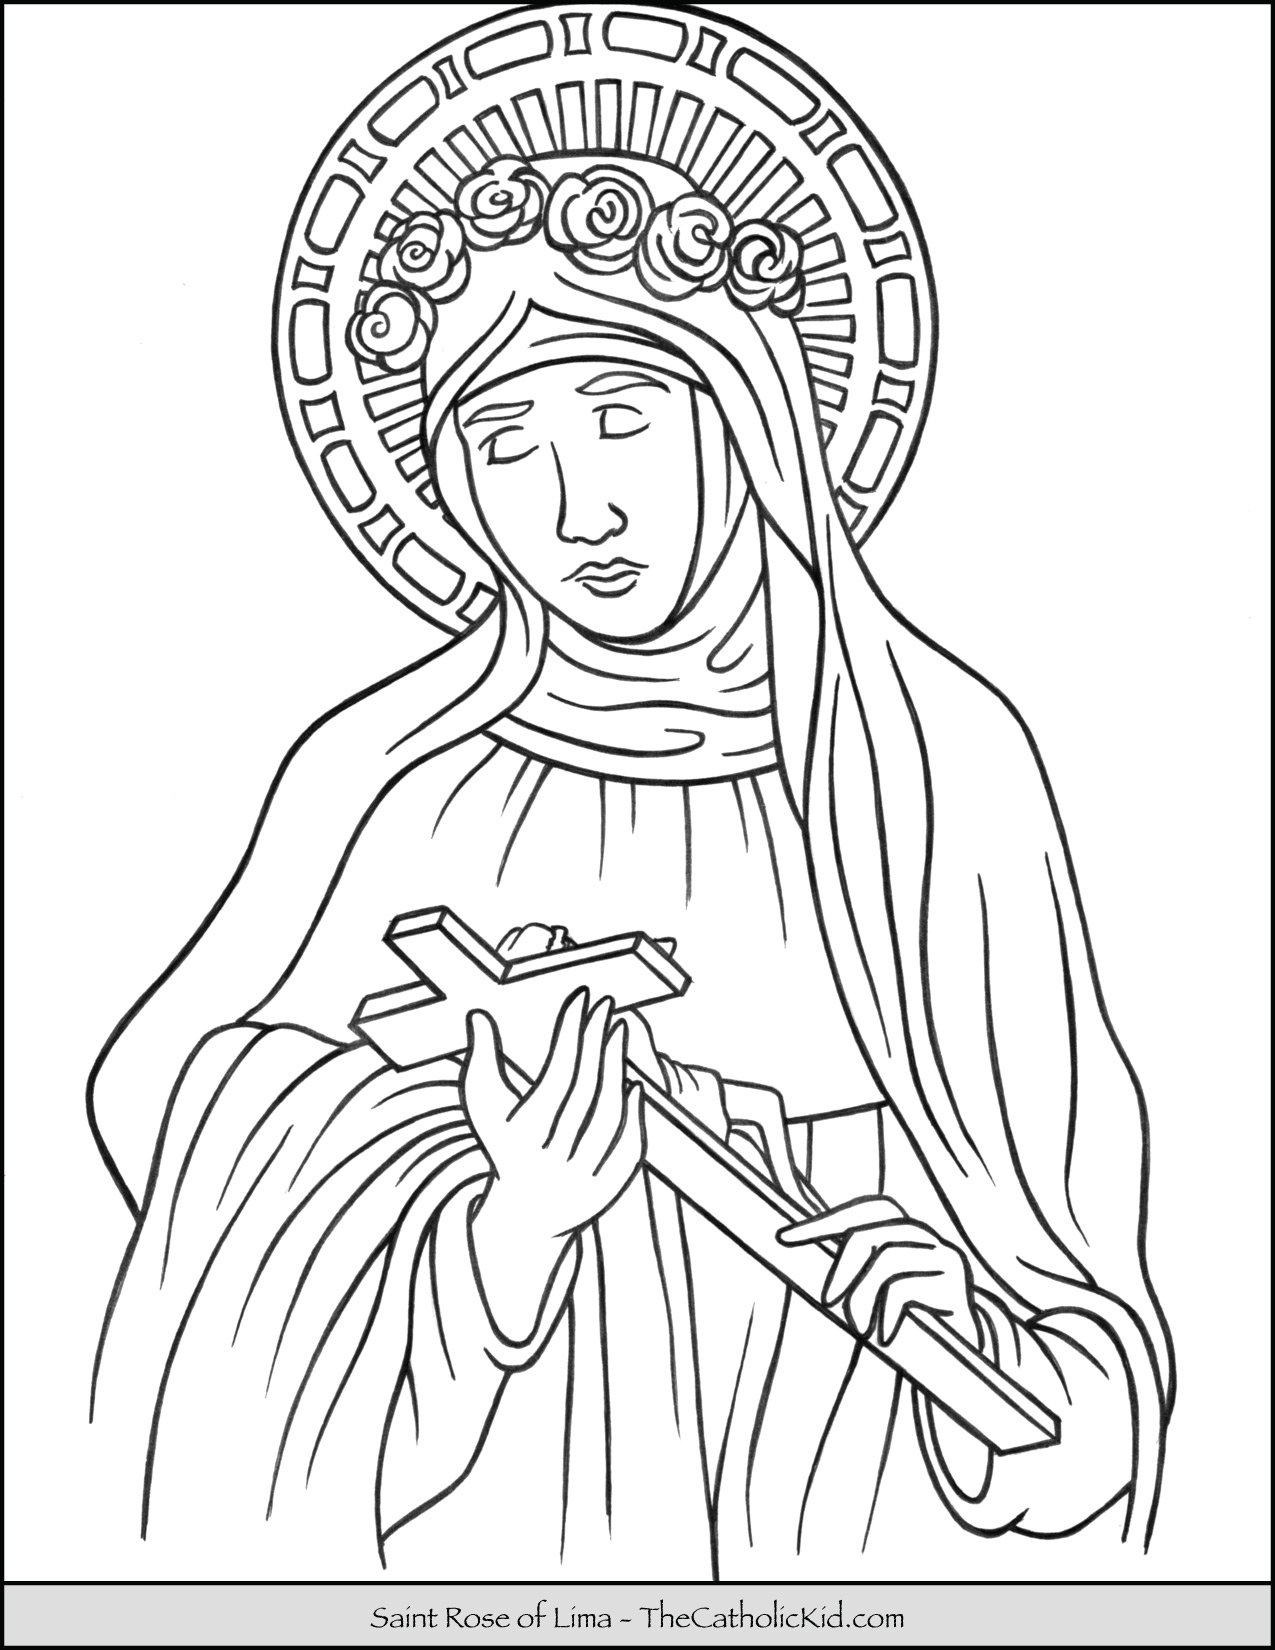 Saint Rose Of Lima Coloring Page Thecatholickid Com